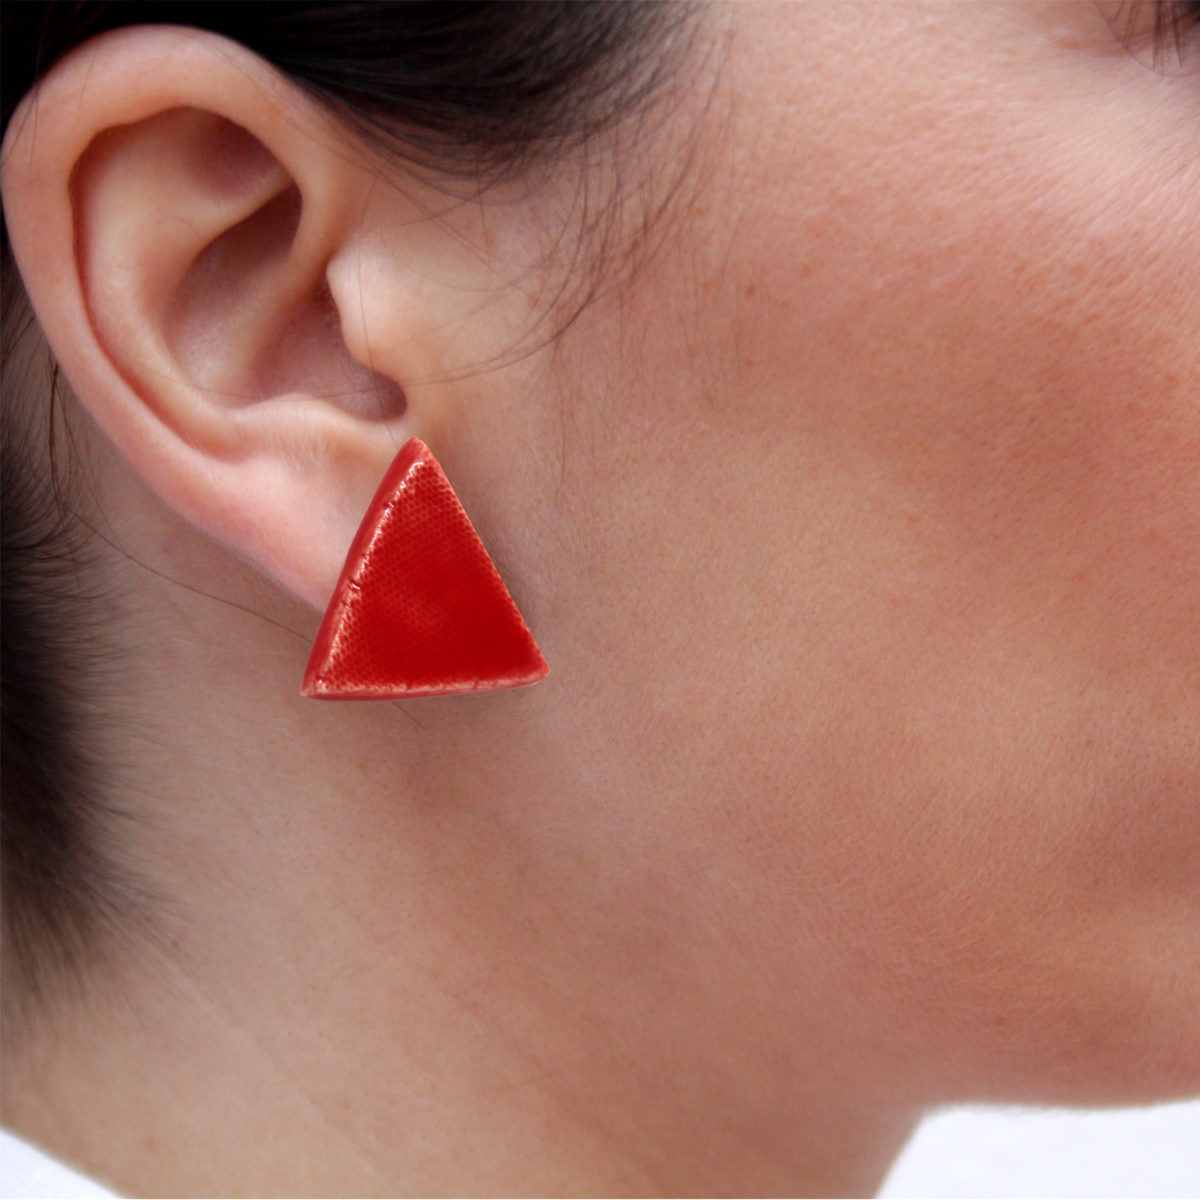 Pendientes de cerámica triangulares hechos a mano color rojo intenso Bowtery minimalista. Minimalist handmade ceramic triangle earrings red